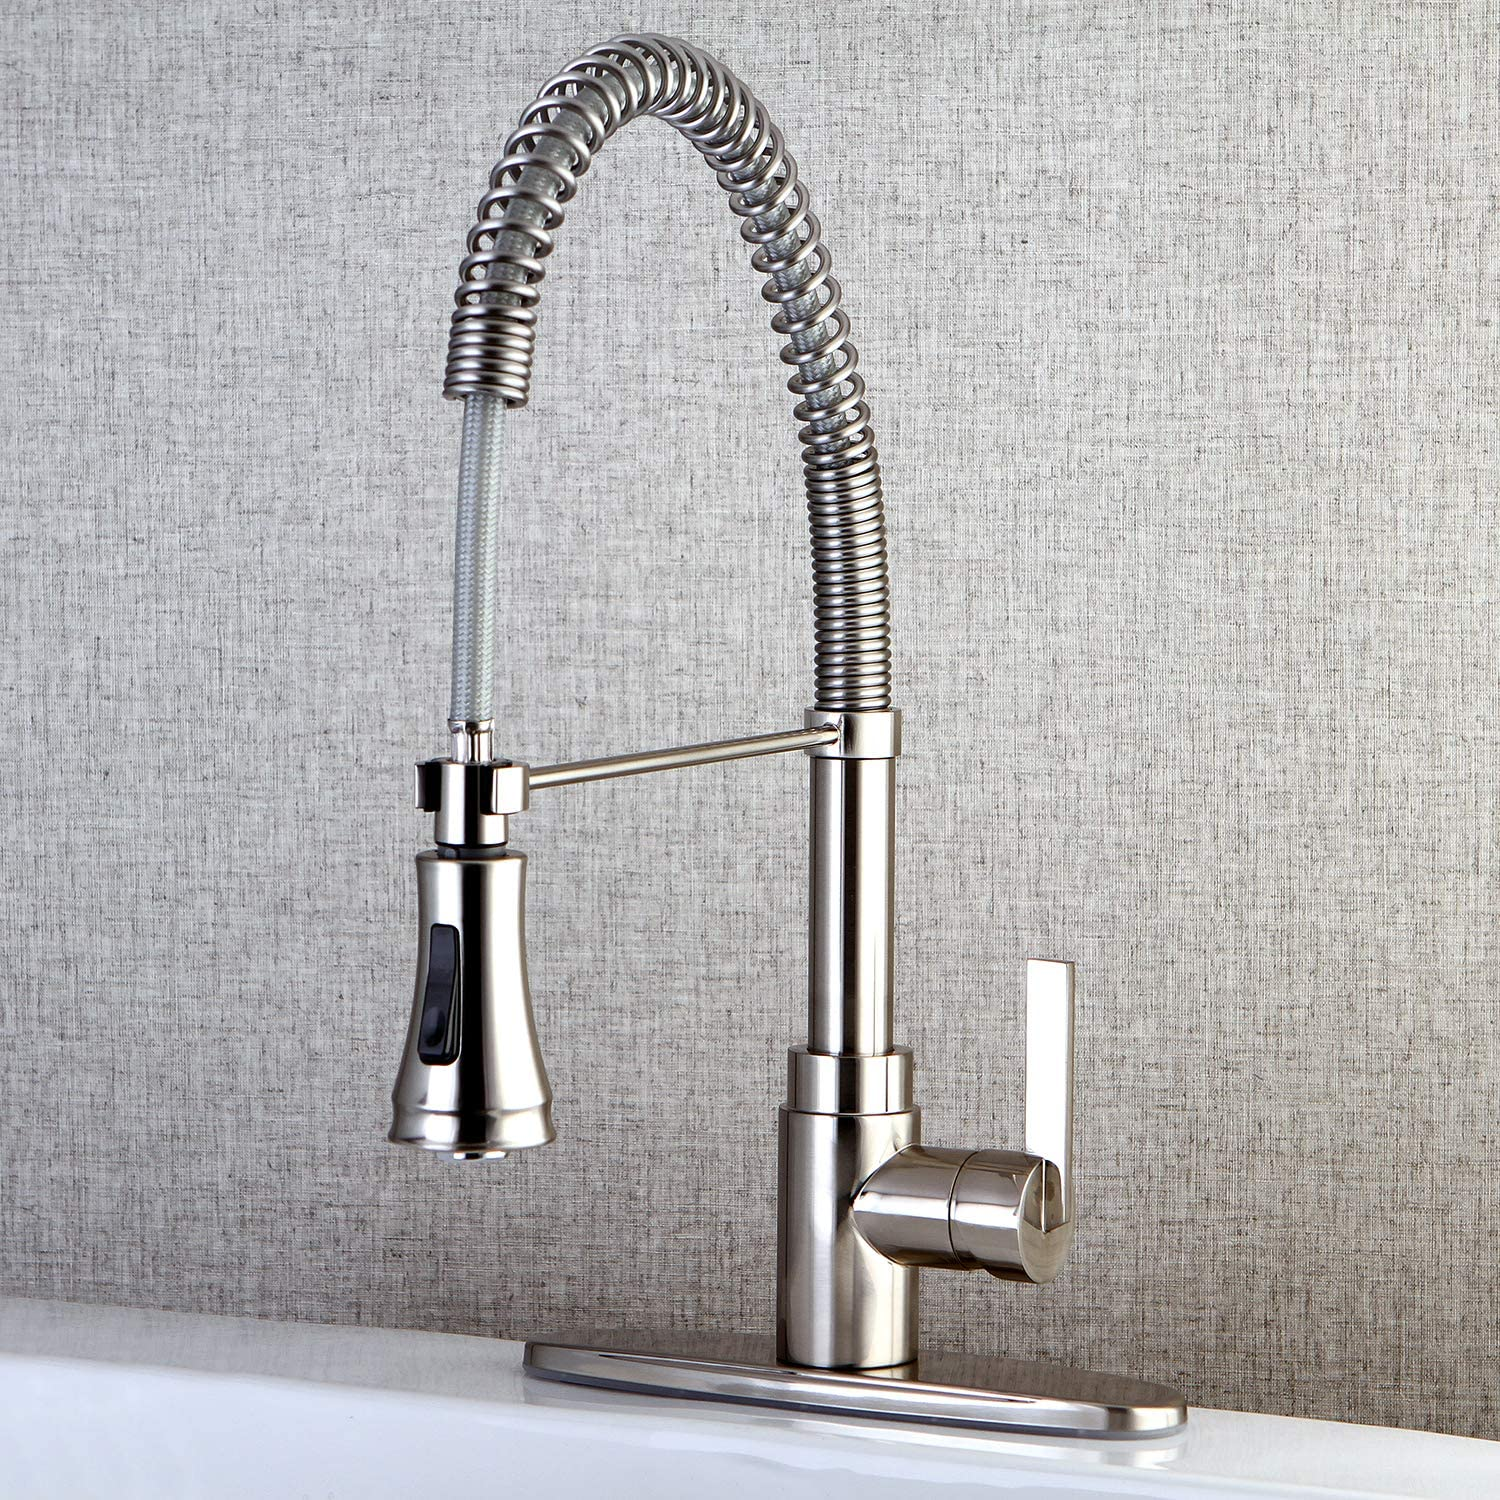 Kingston Brass GSC881NCLSP Gourmetier Century 8-Inch Centerset Single Handle Kitchen Faucet with Pull-Out Sprayer Polished Chrome